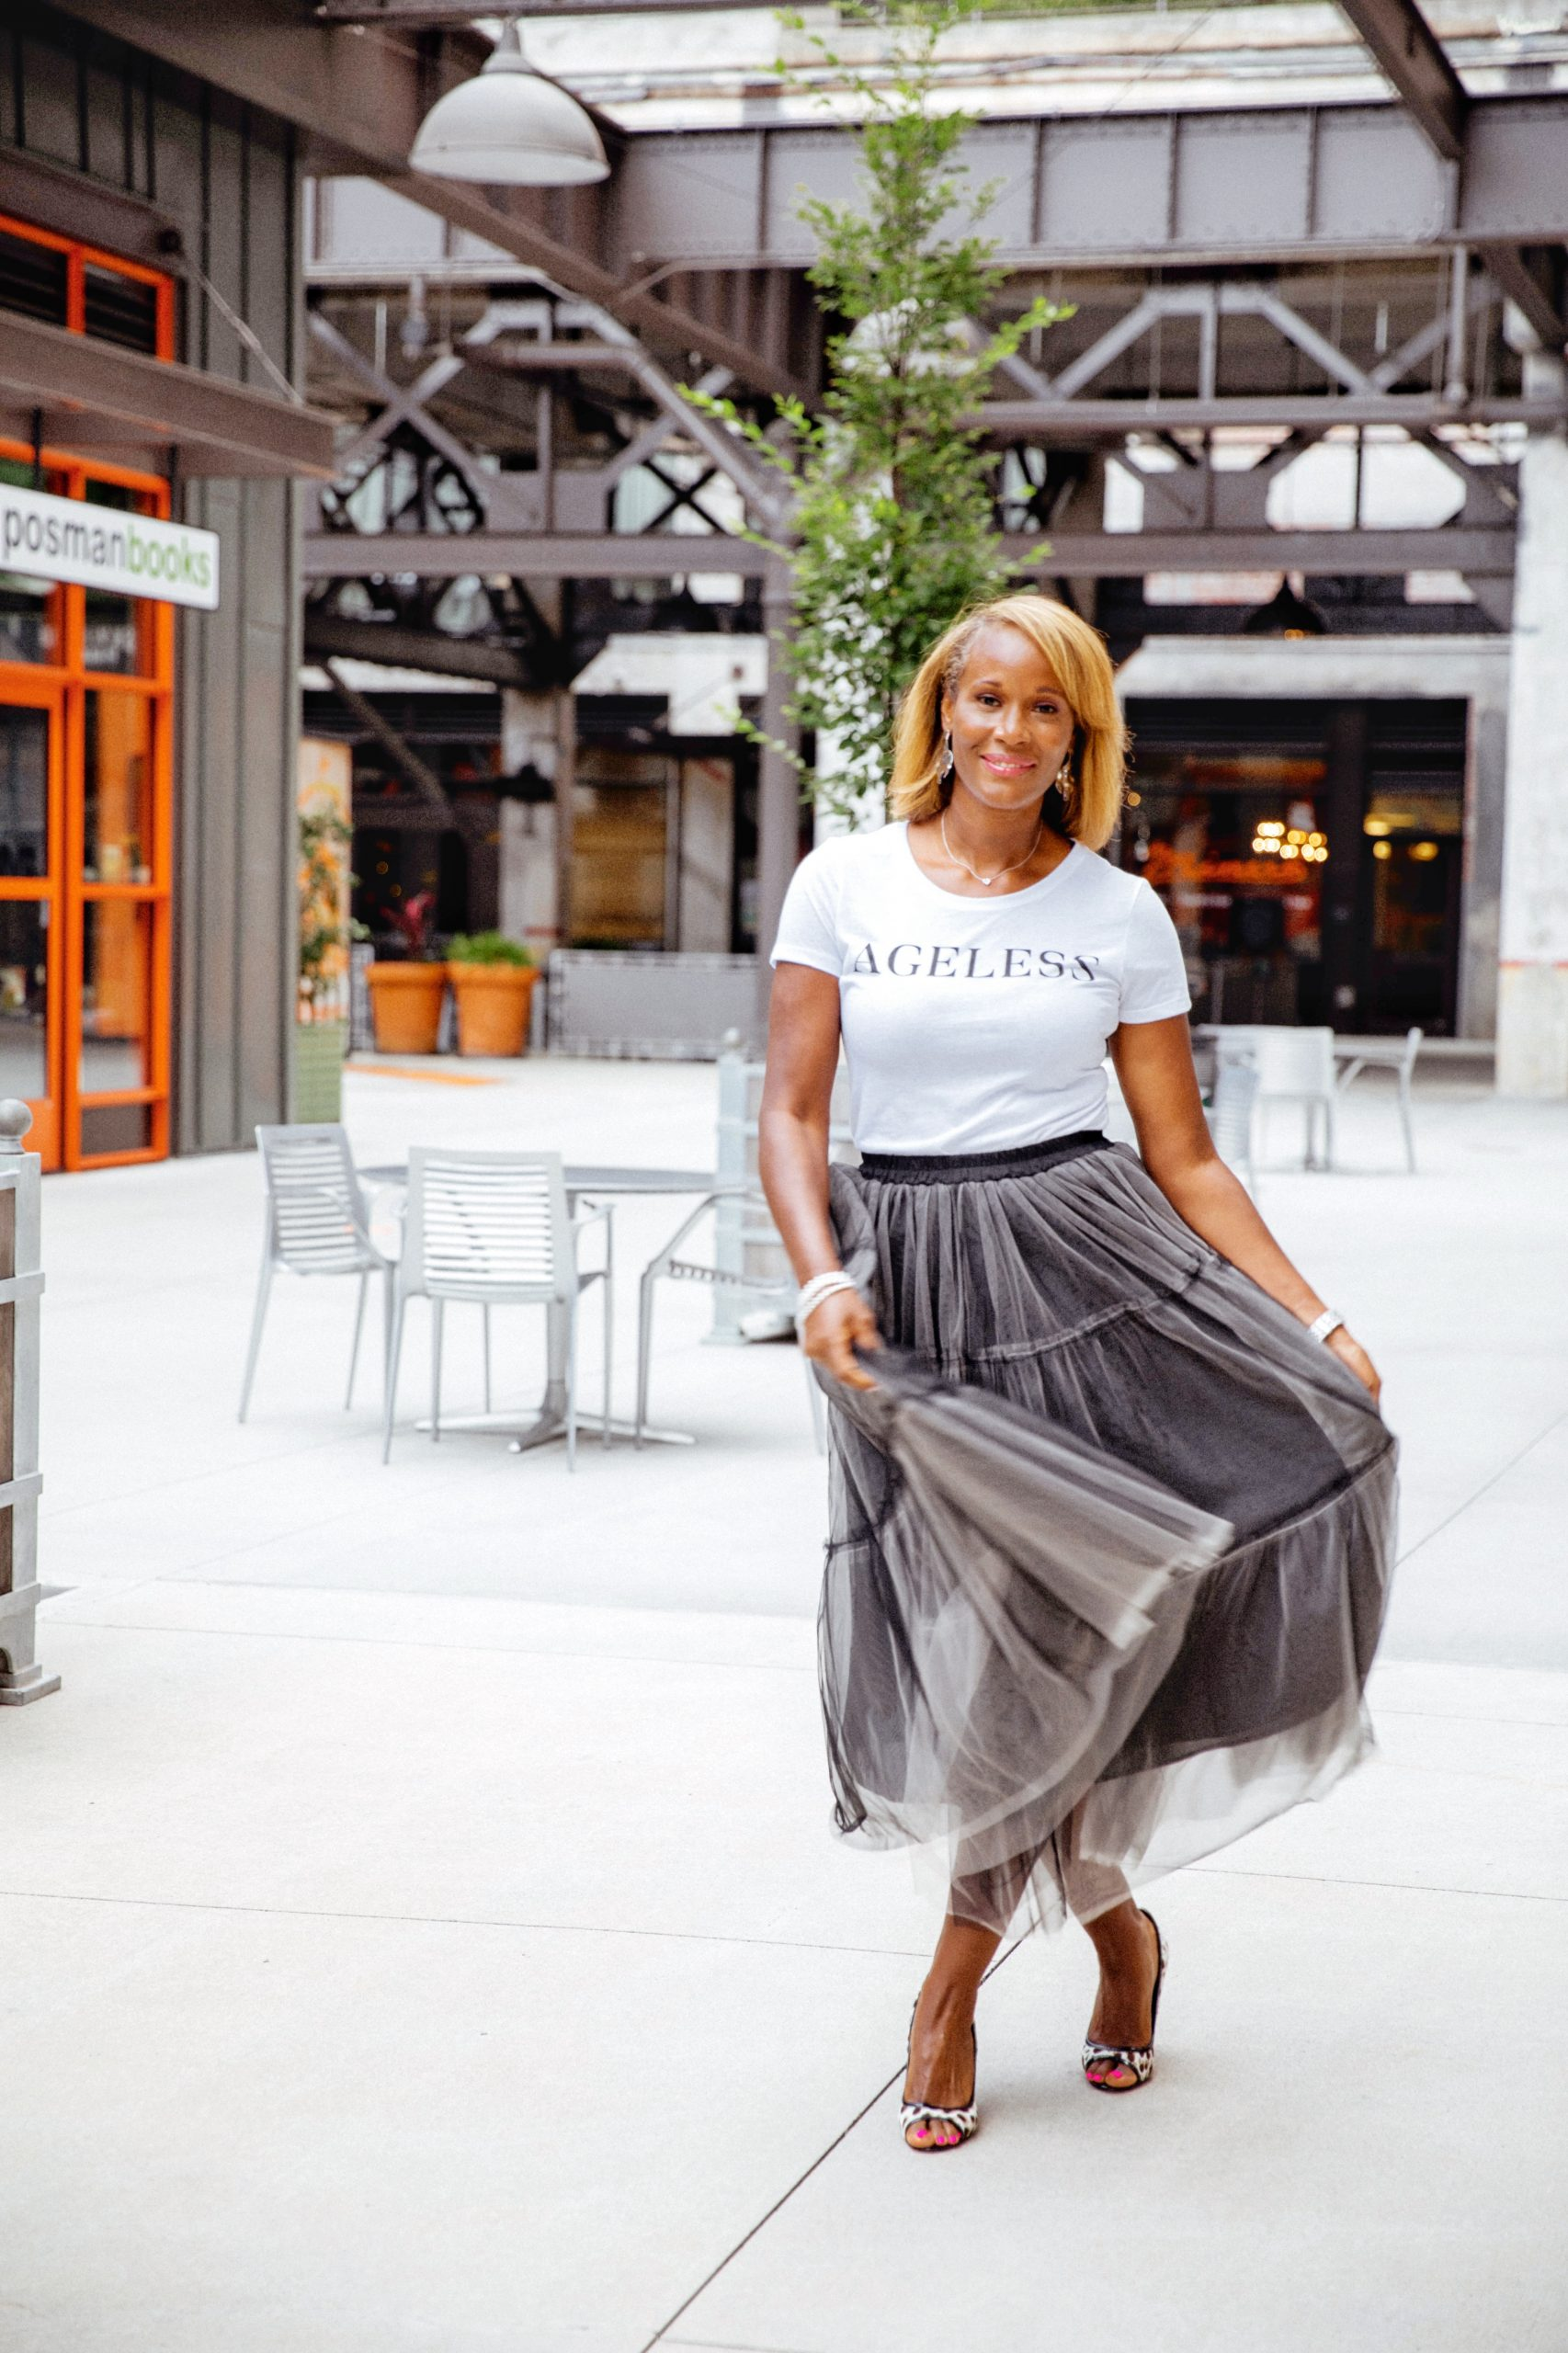 Ageless website 2 scaled - Stylish Ways to Wear A Graphic Tee When You're Over 50